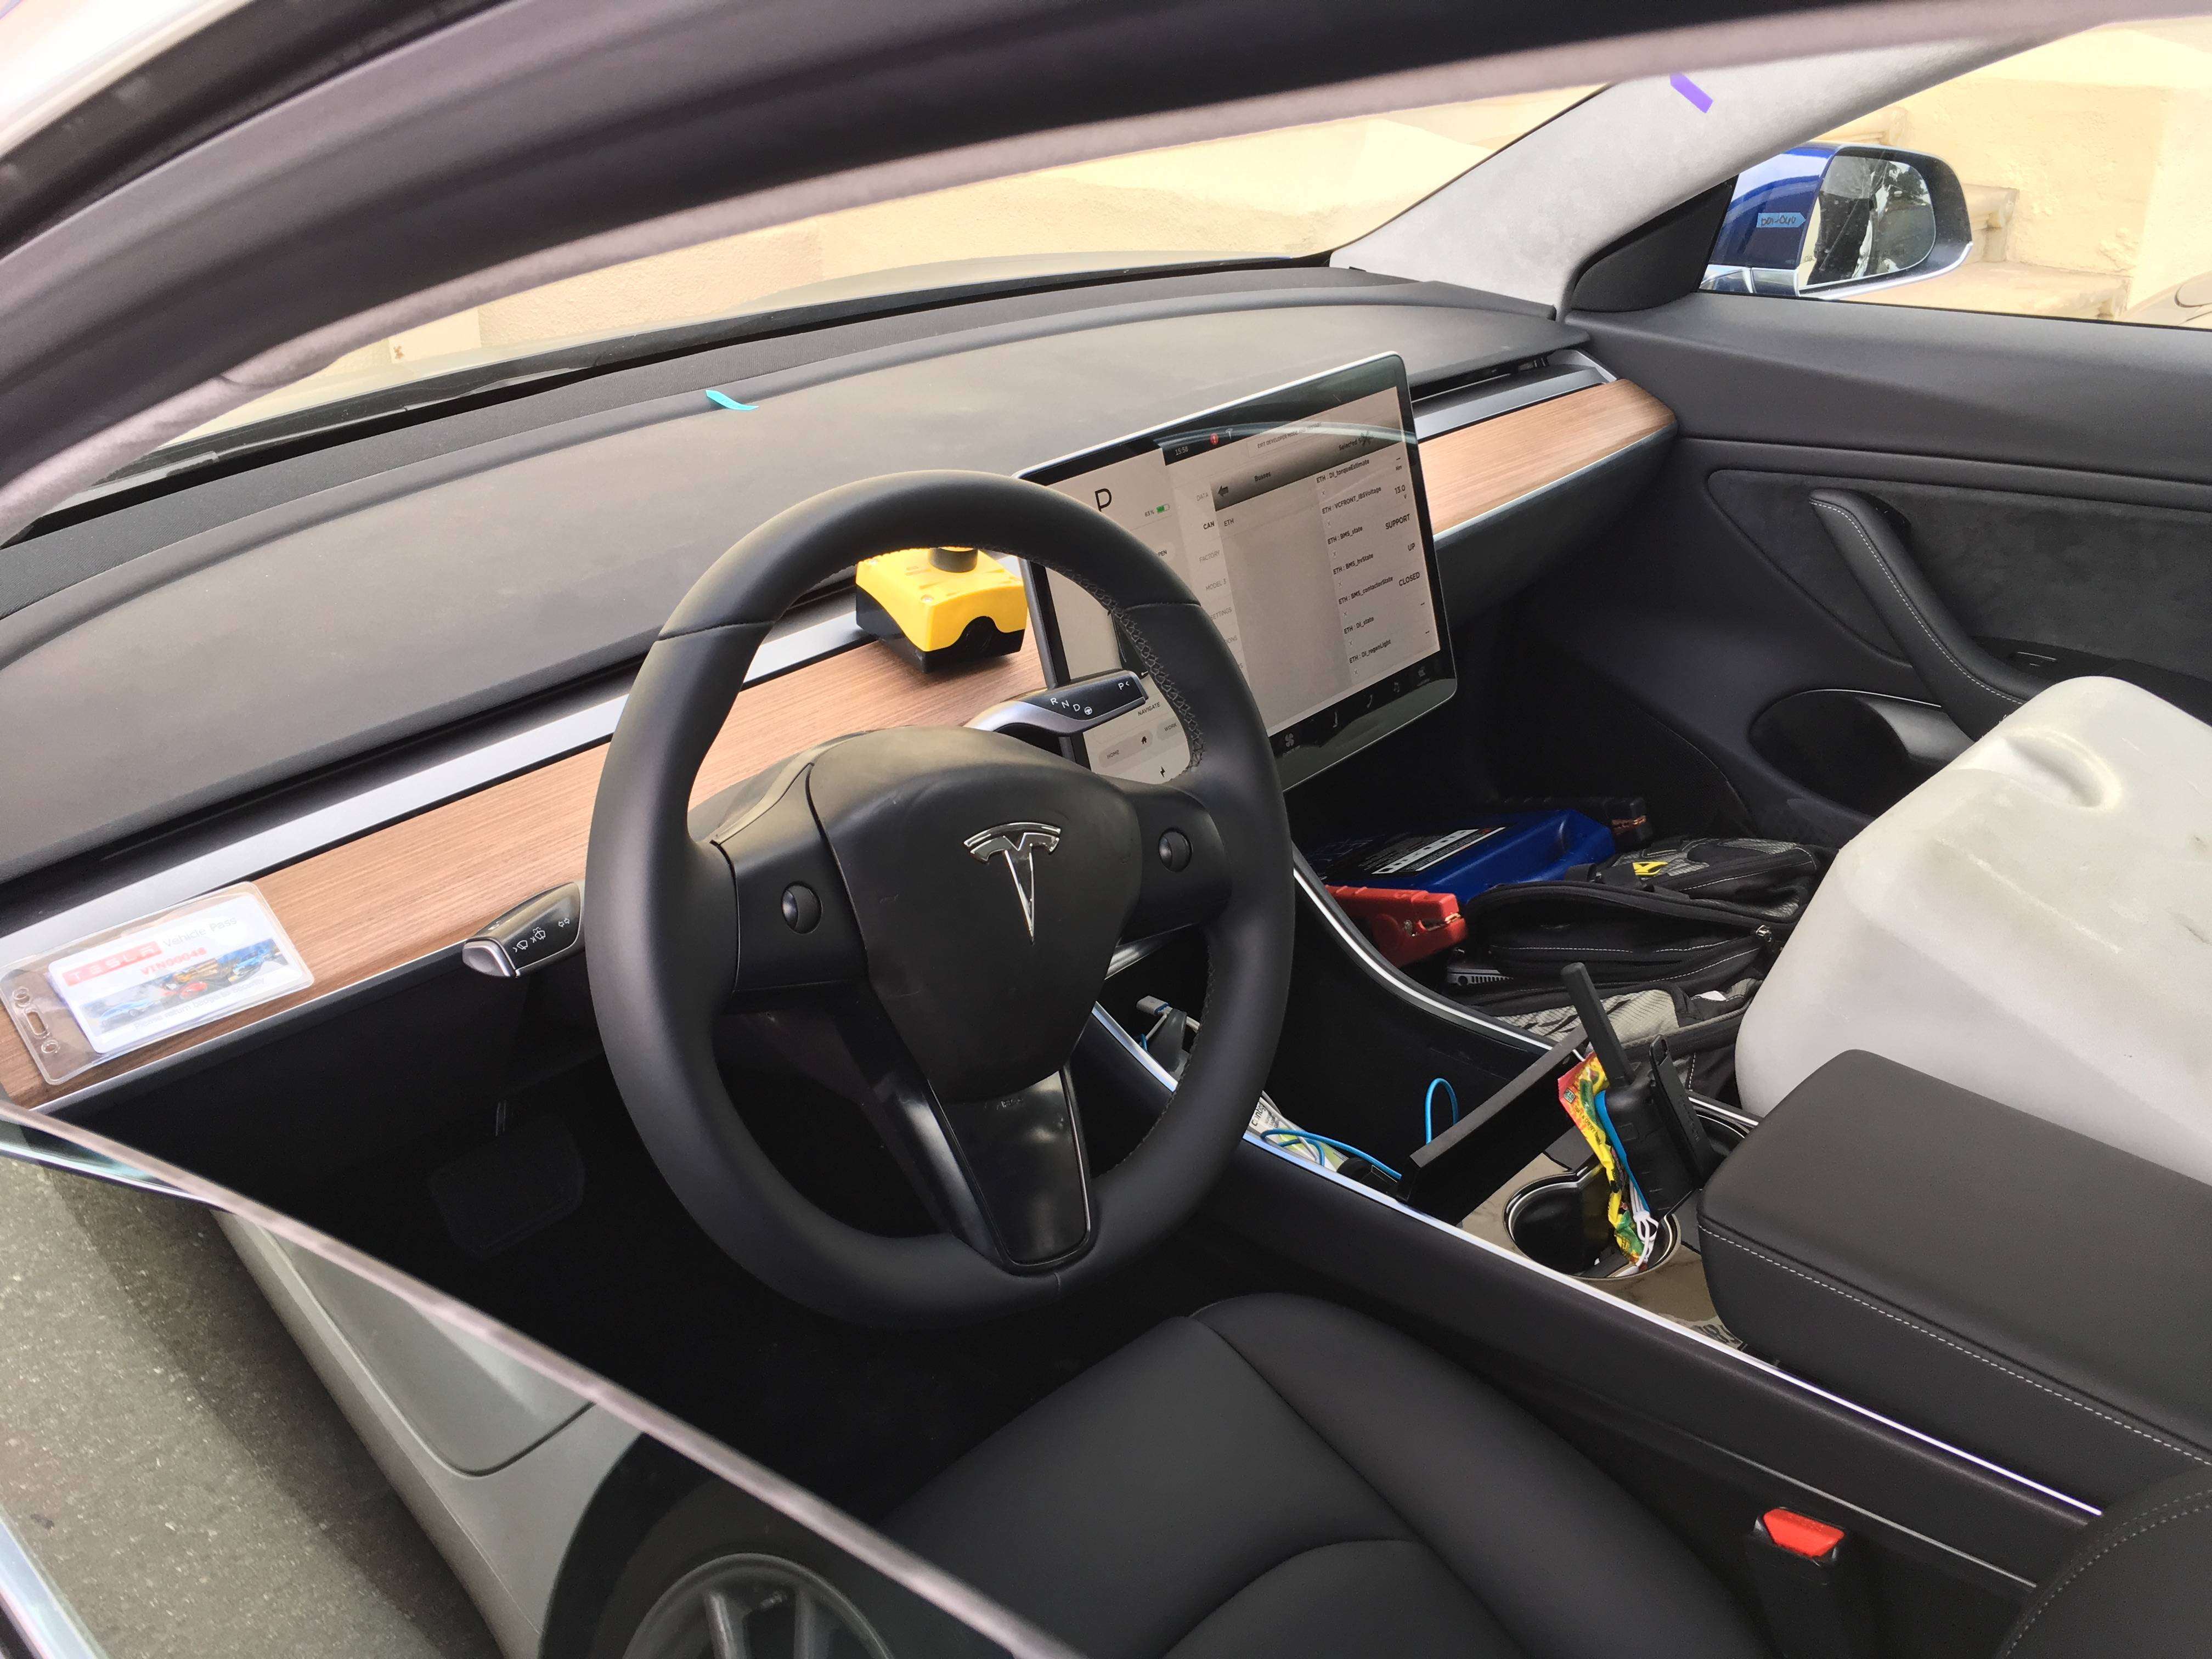 New Tesla Model 3 Photos Show Us The Clearest View Yet Of Pit Steering Wheel